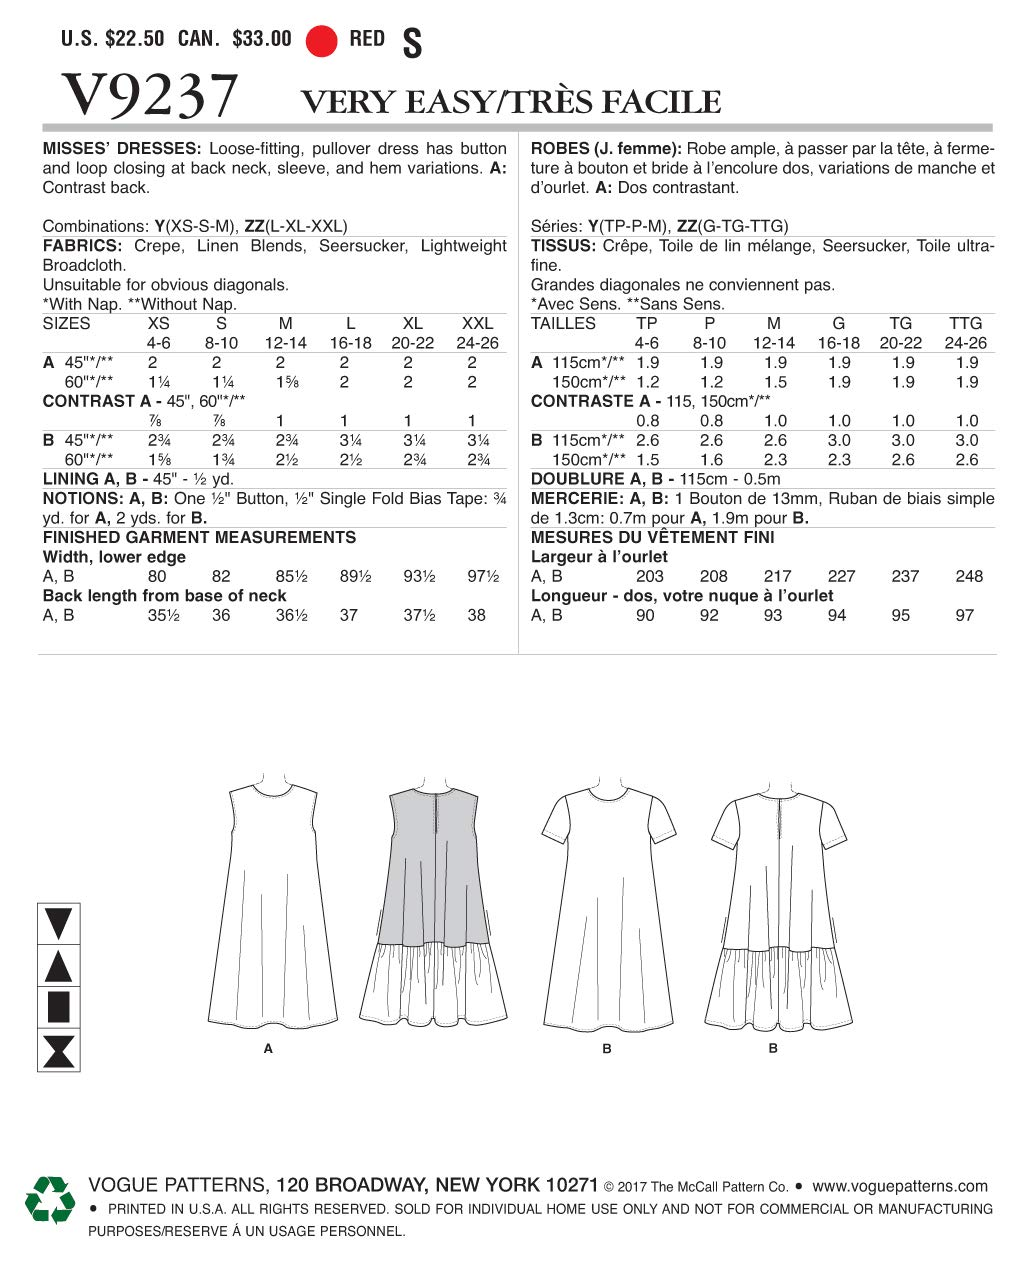 Vogue Patterns vestiti da donna, taglie xsm-med